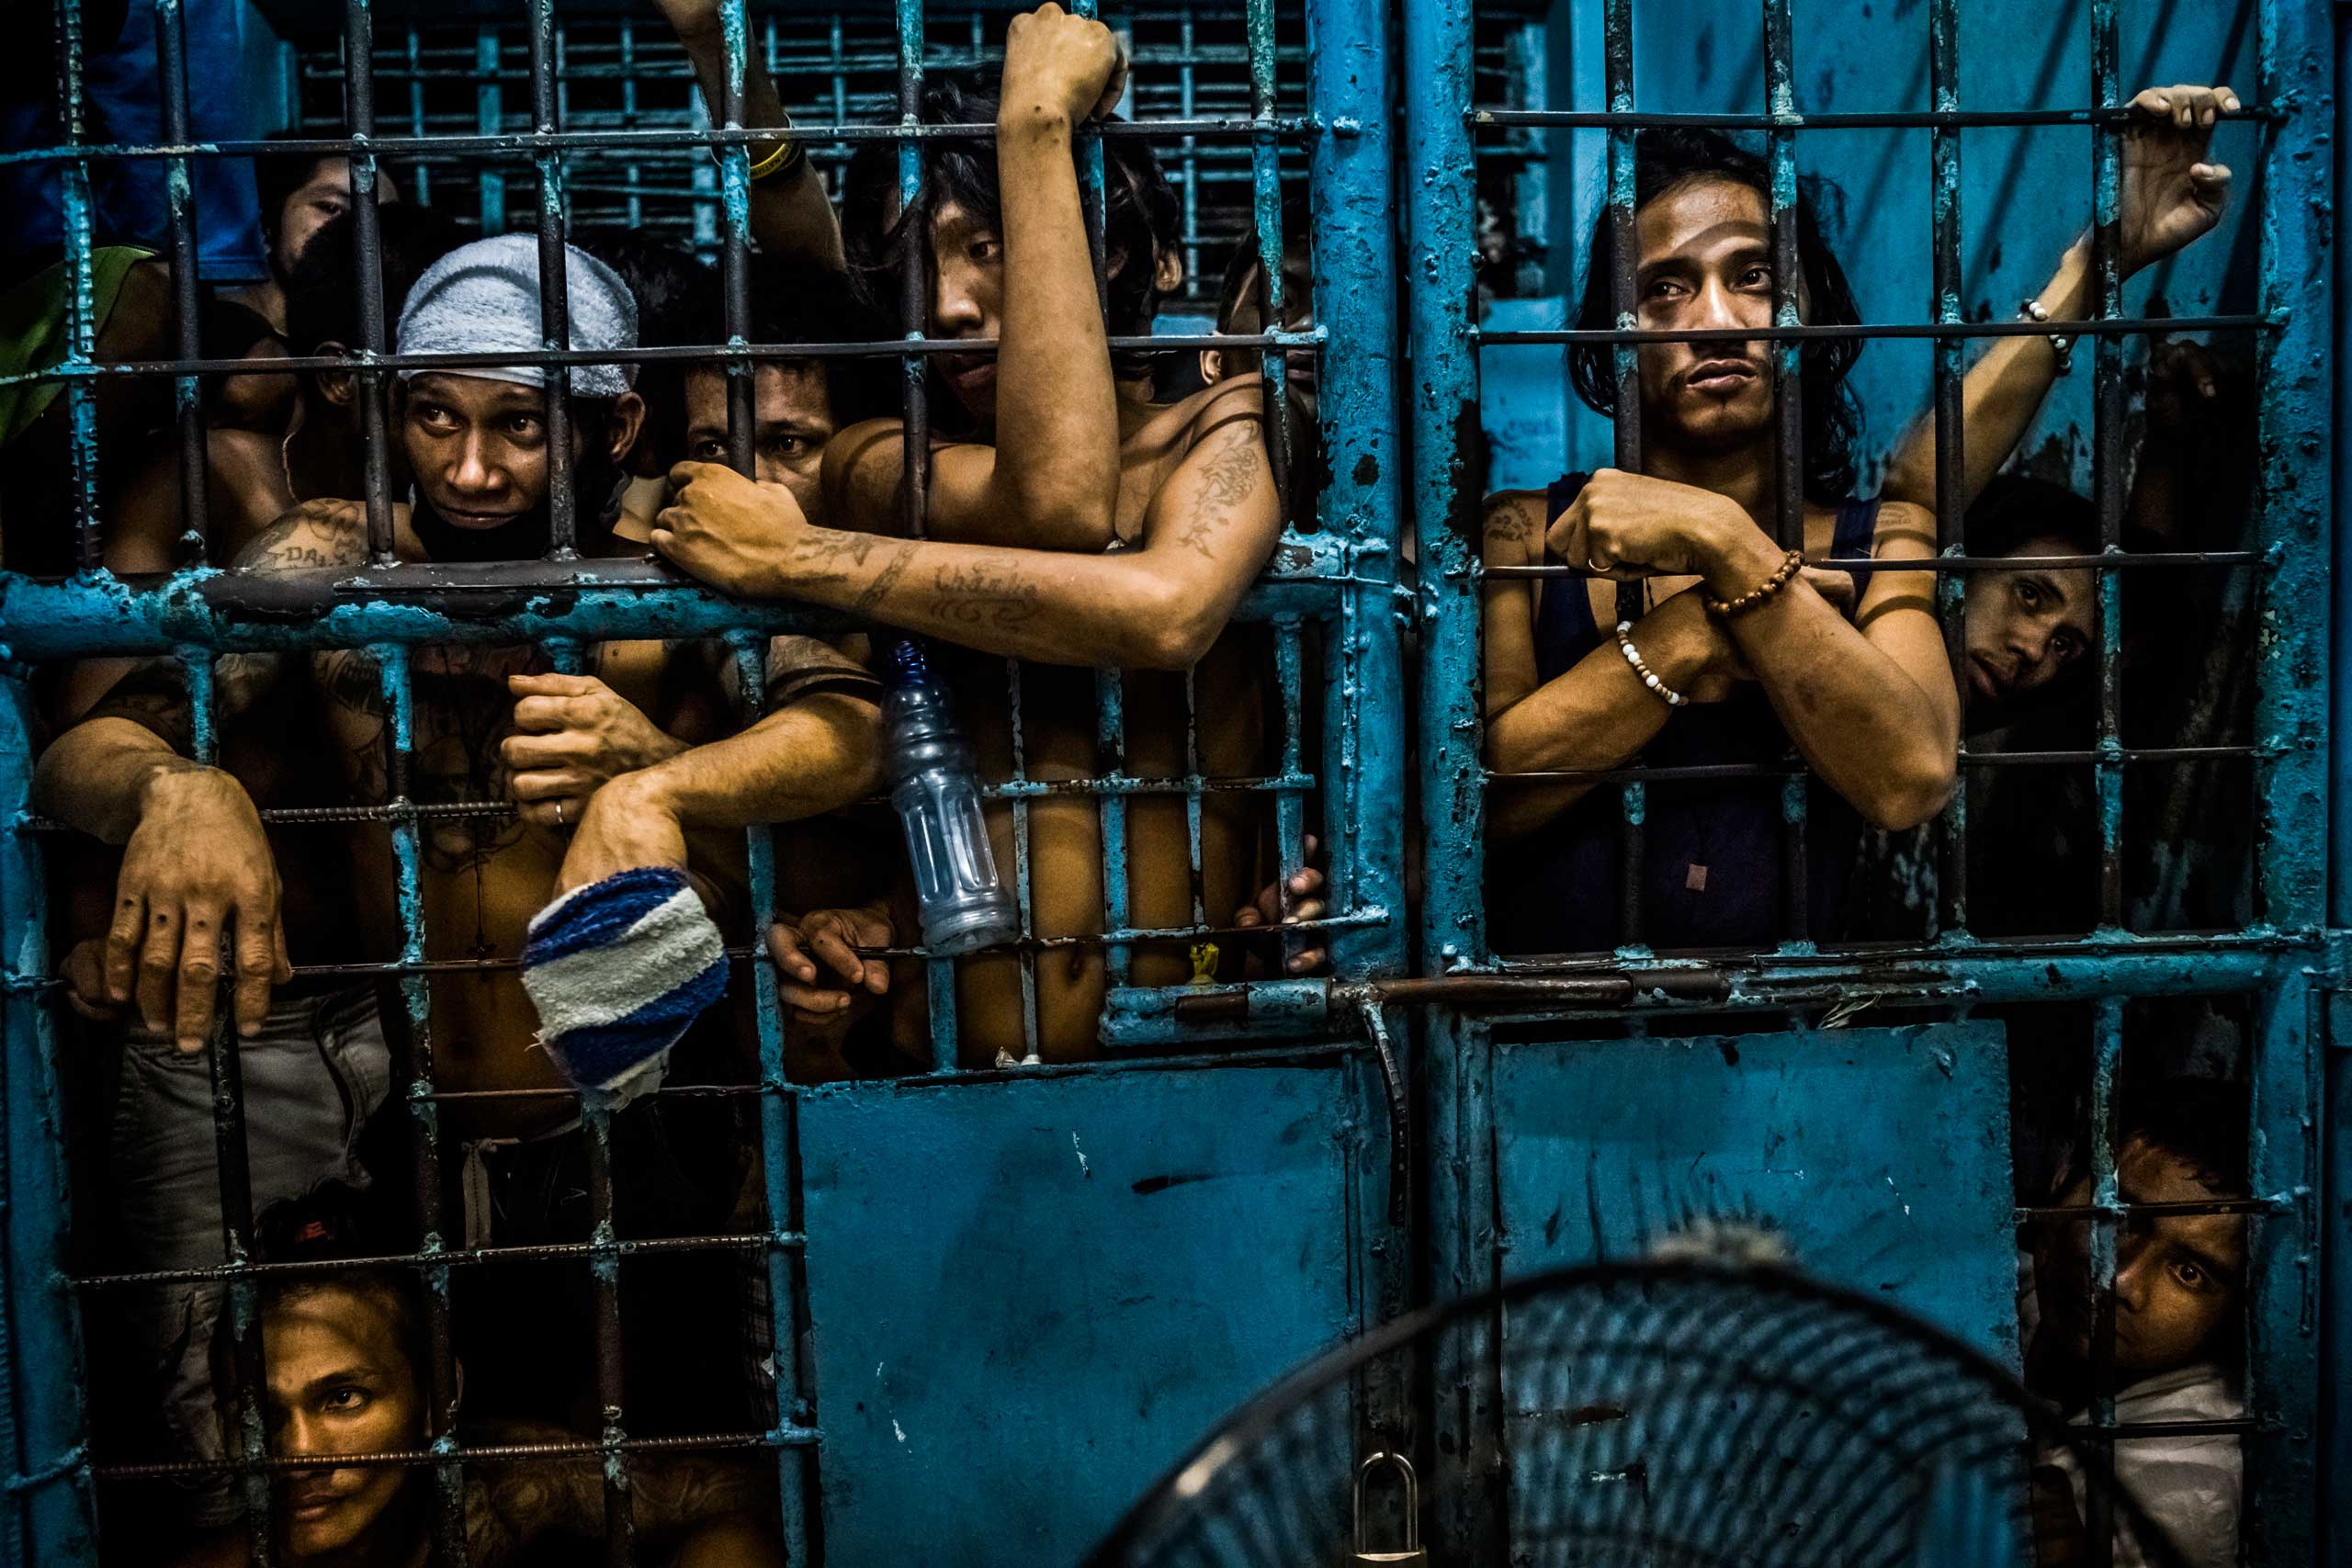 Inmates watch as drug suspects are processed inside a police station on Oct. 12, 2016 in Manila, Philippines.